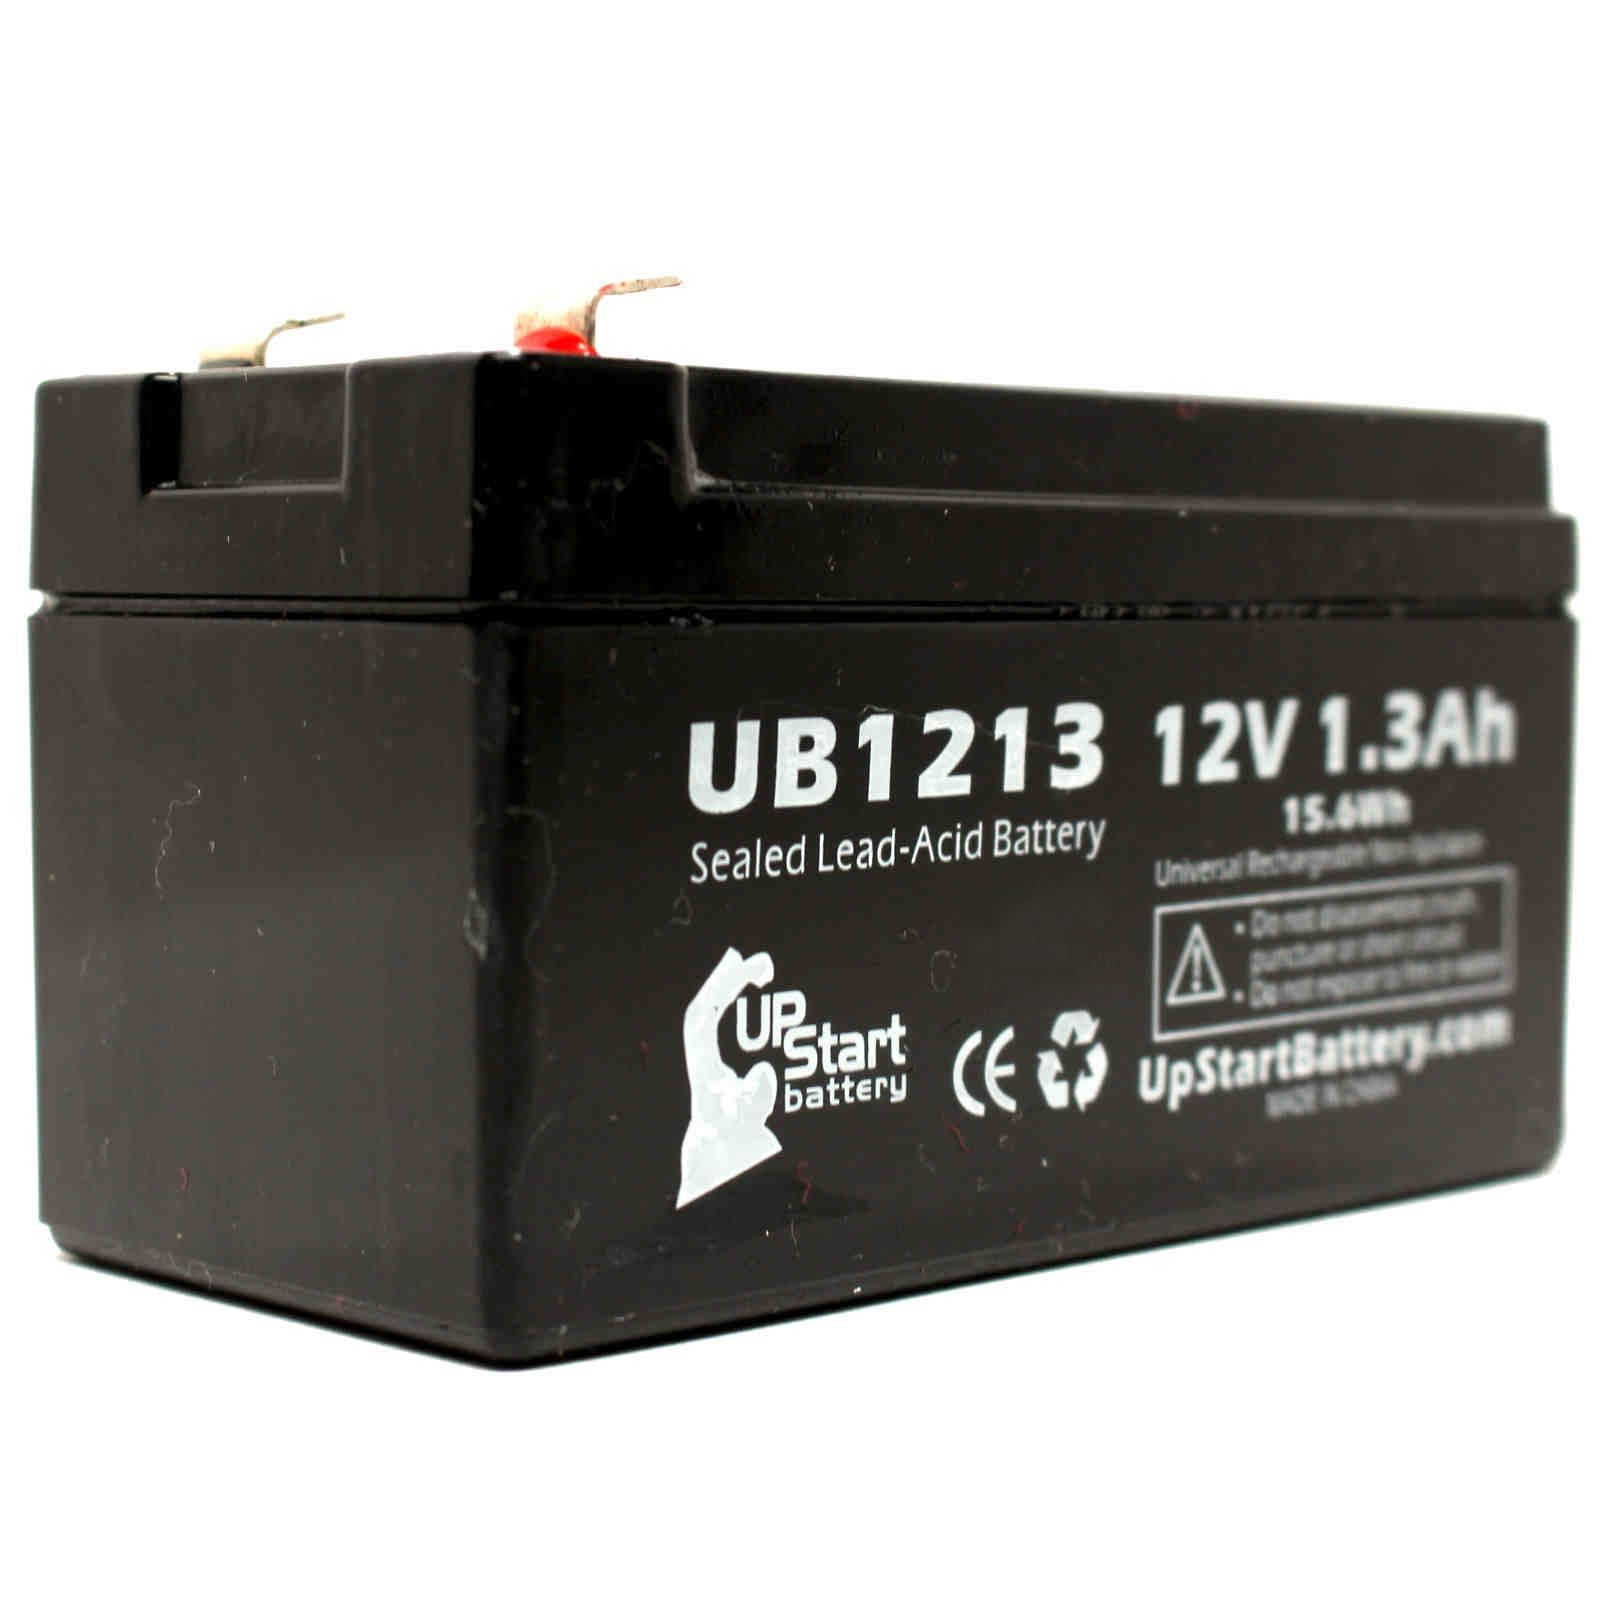 2-Pack Replacement UpStart UB1213 Battery for 3M Healthcare 3000, Access LCR121R3P, SLA1212, SLA1213 Universal Sealed Lead Acid Battery(12V, 1.3Ah, F1 Terminal, AGM, SLA) - image 1 of 3